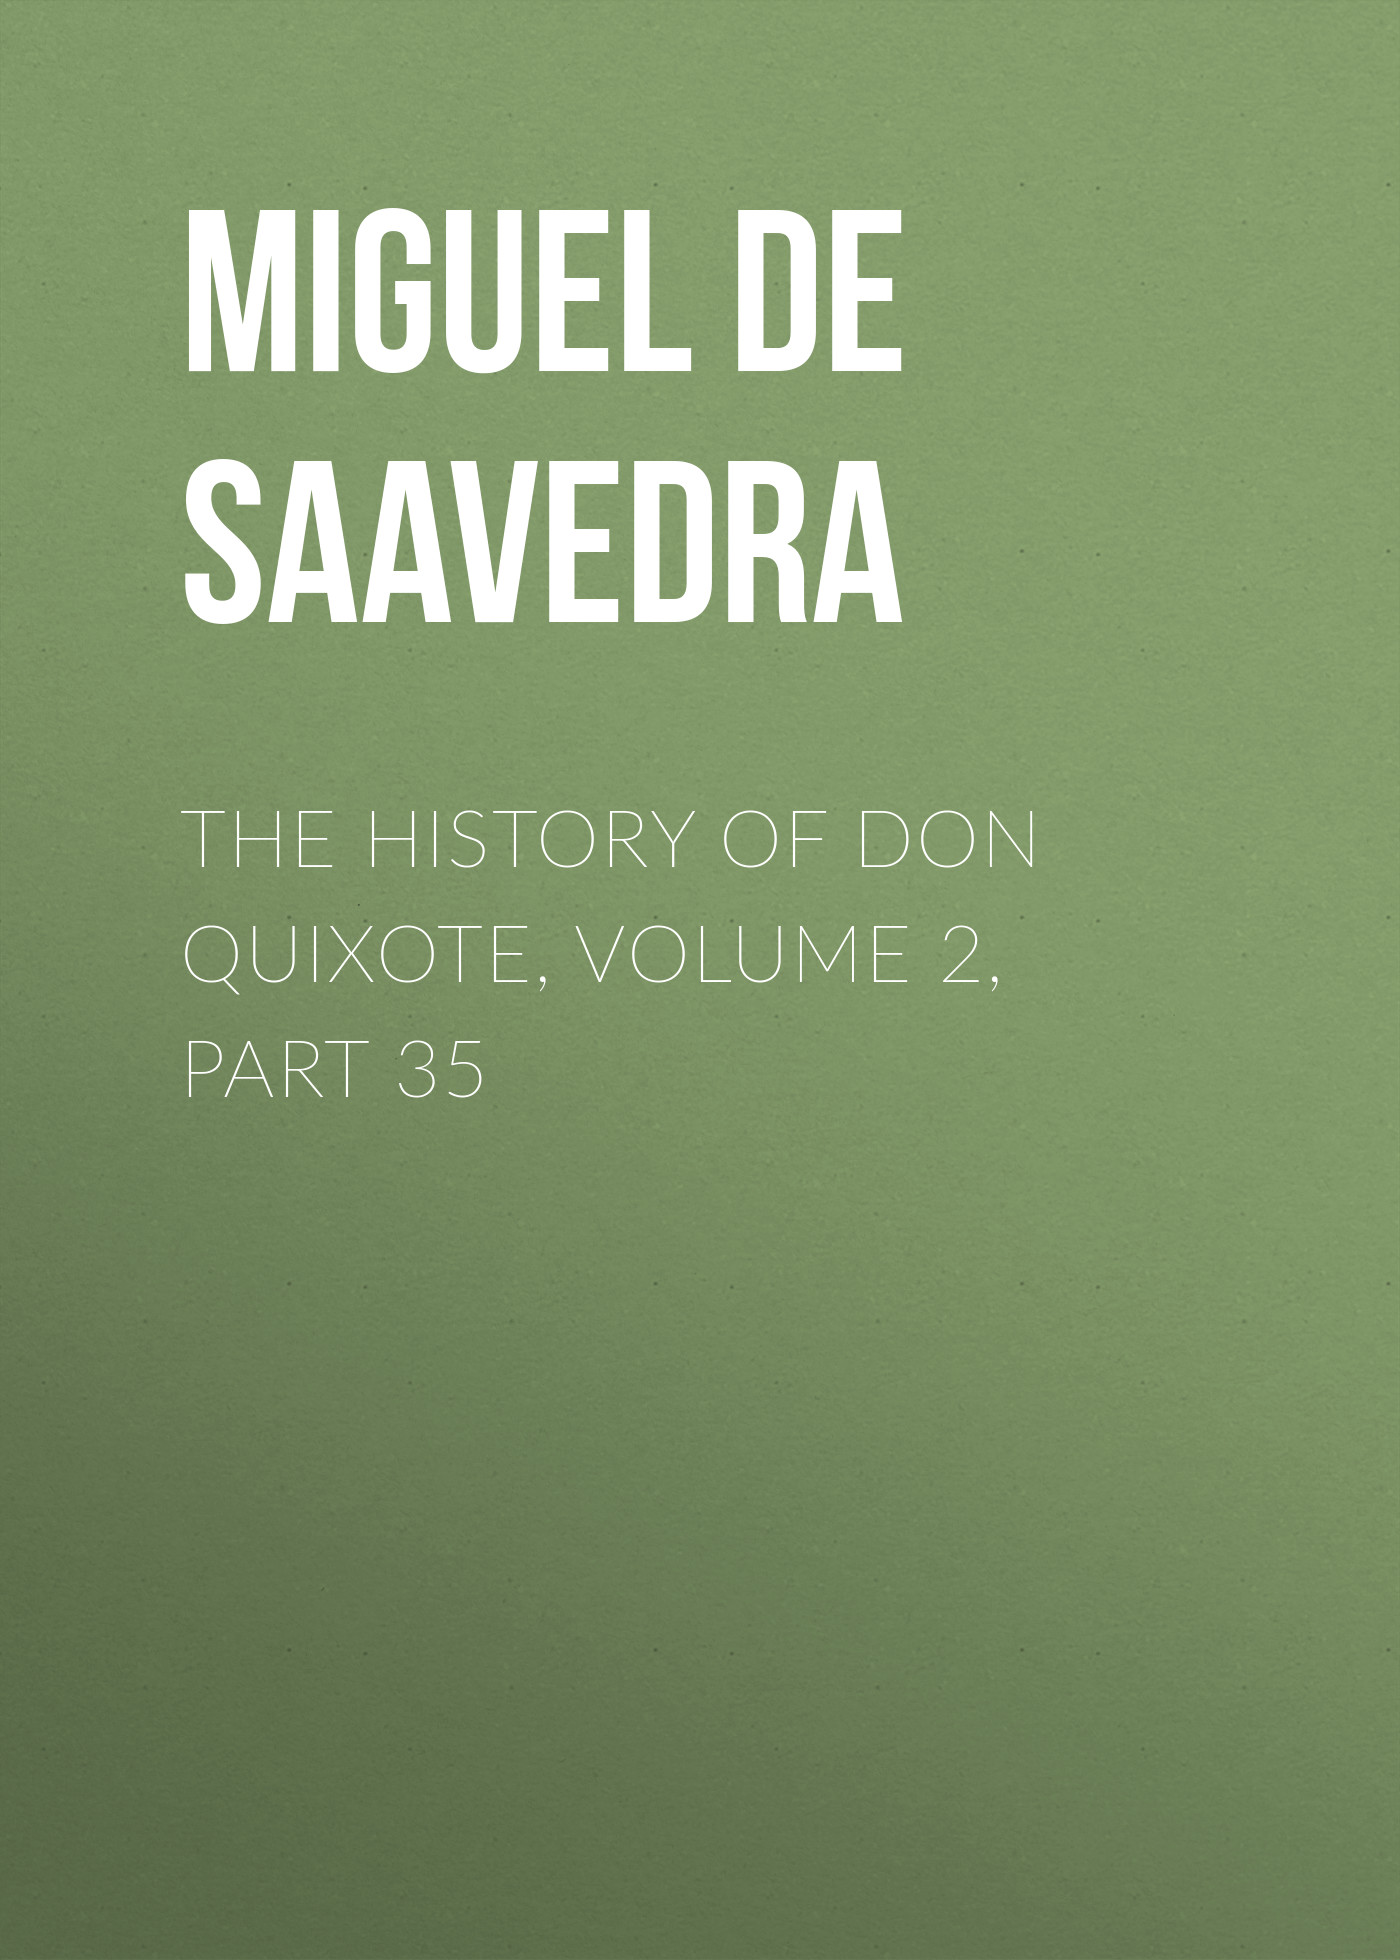 Мигель де Сервантес Сааведра The History of Don Quixote, Volume 2, Part 35 rasmus björn anderson the heimskringla a history of the norse kings volume 5 part 2